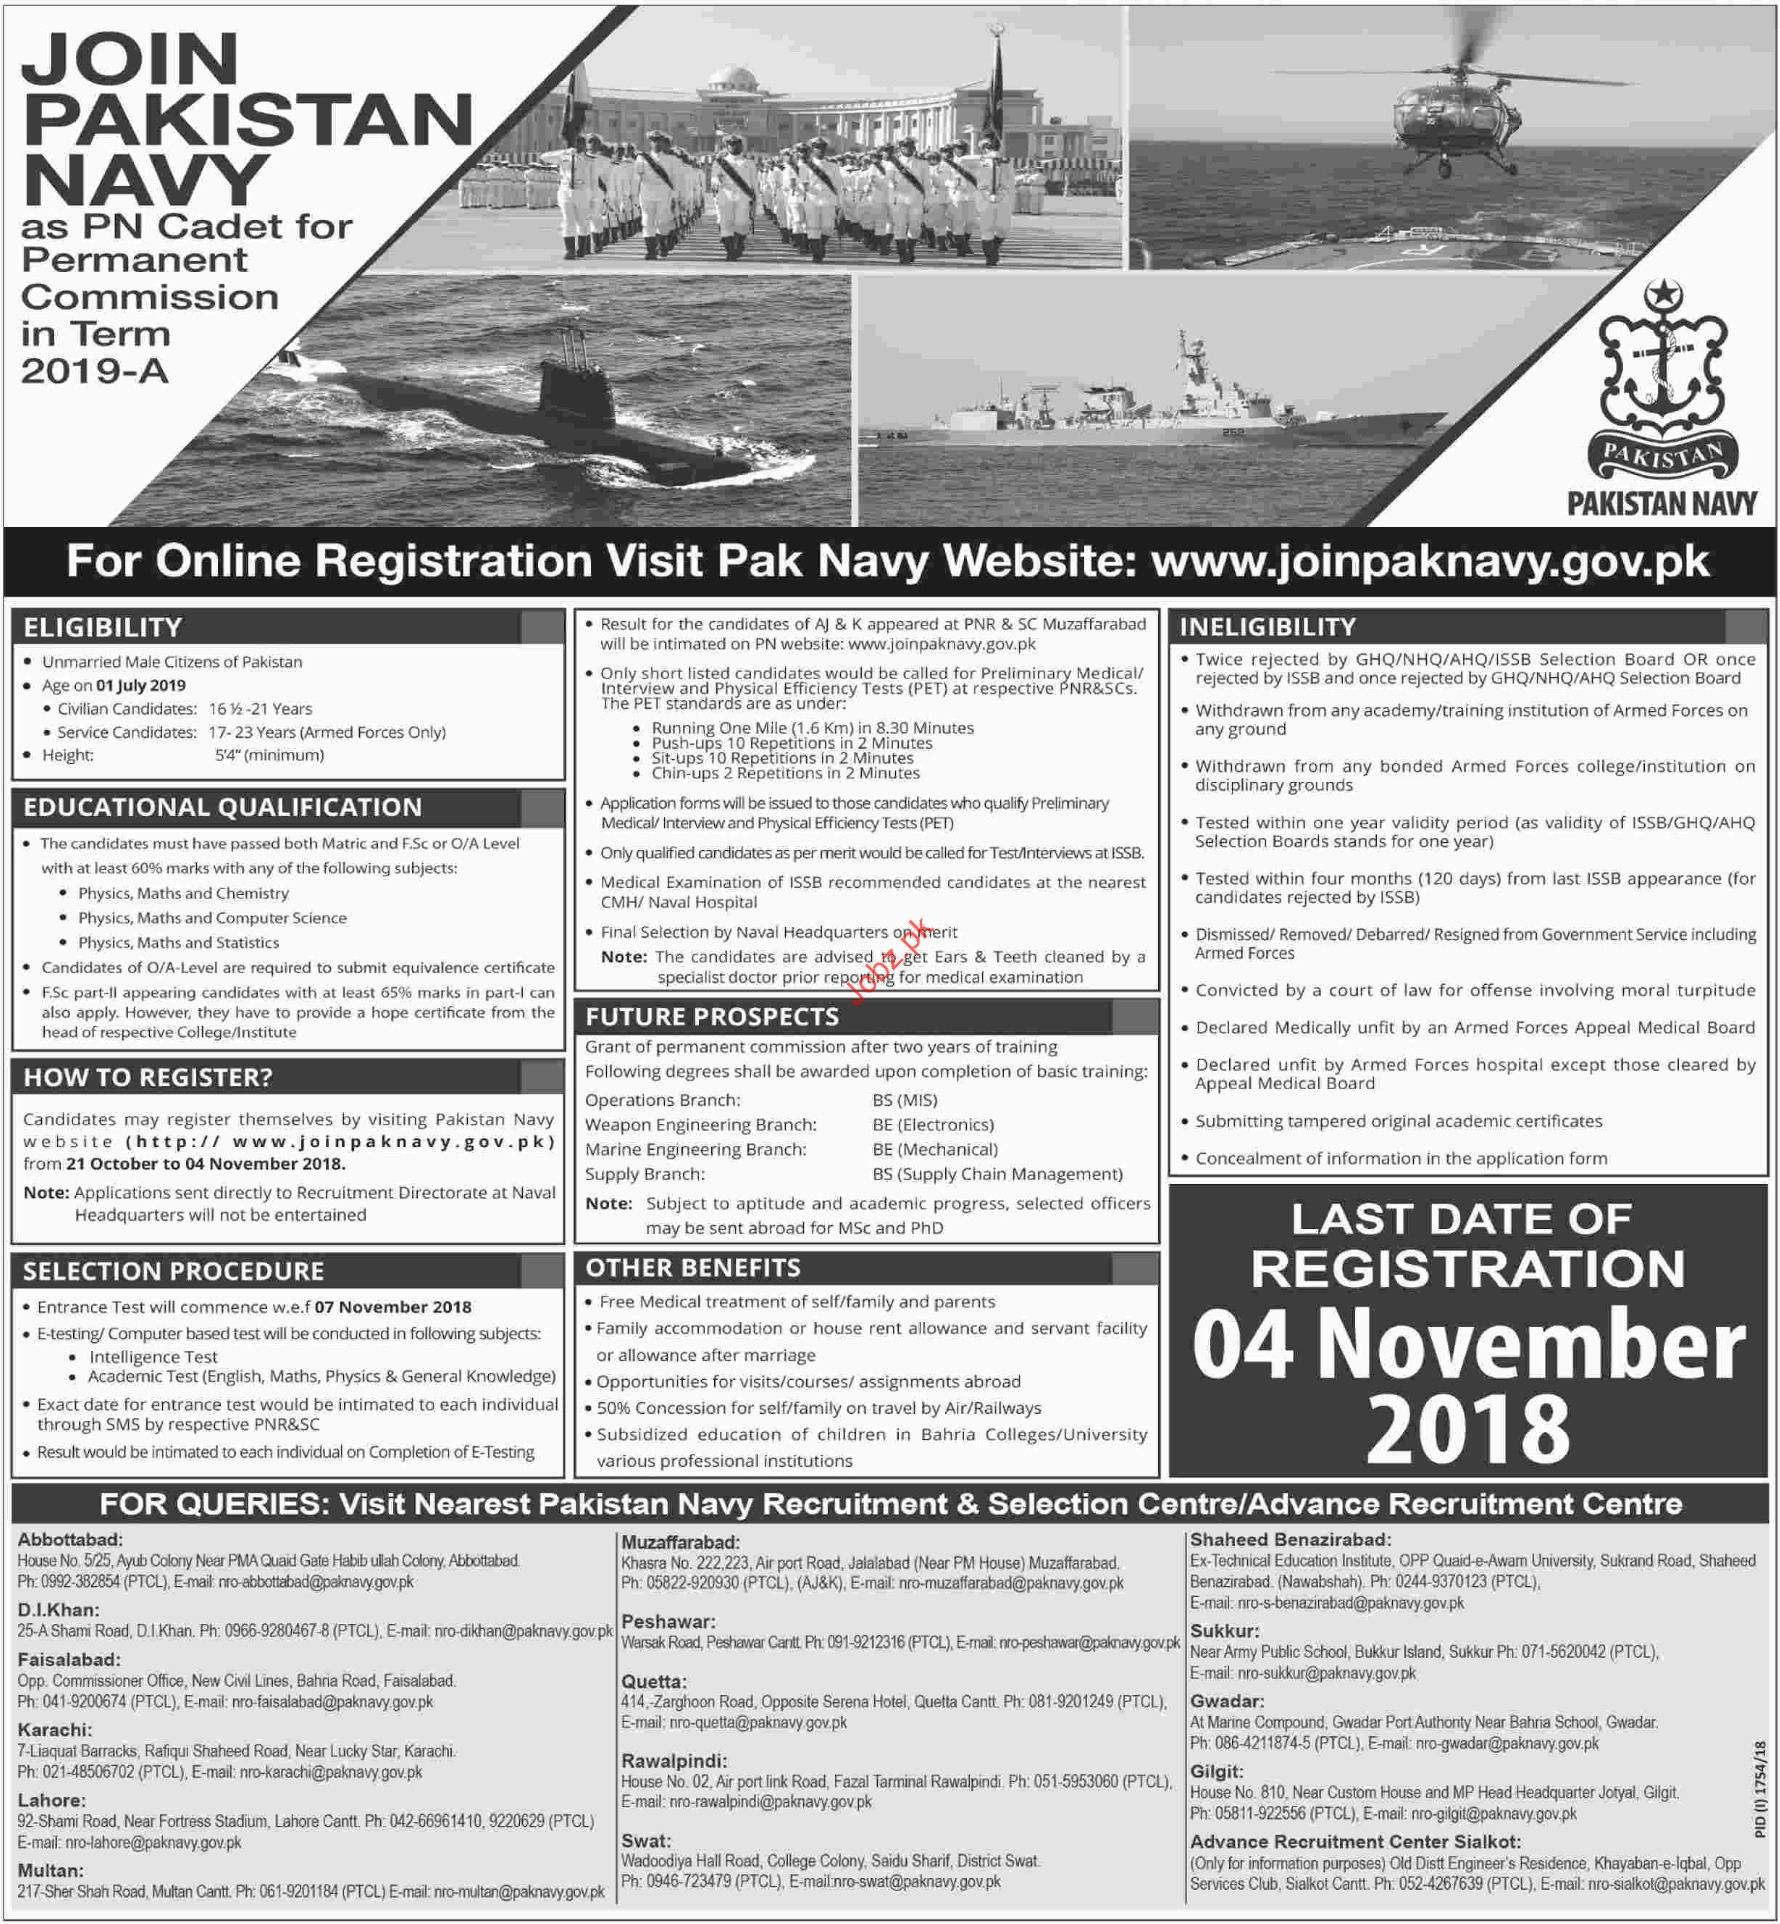 Join Pakistan Navy as PN Cadet for Permanent Commission Jobs